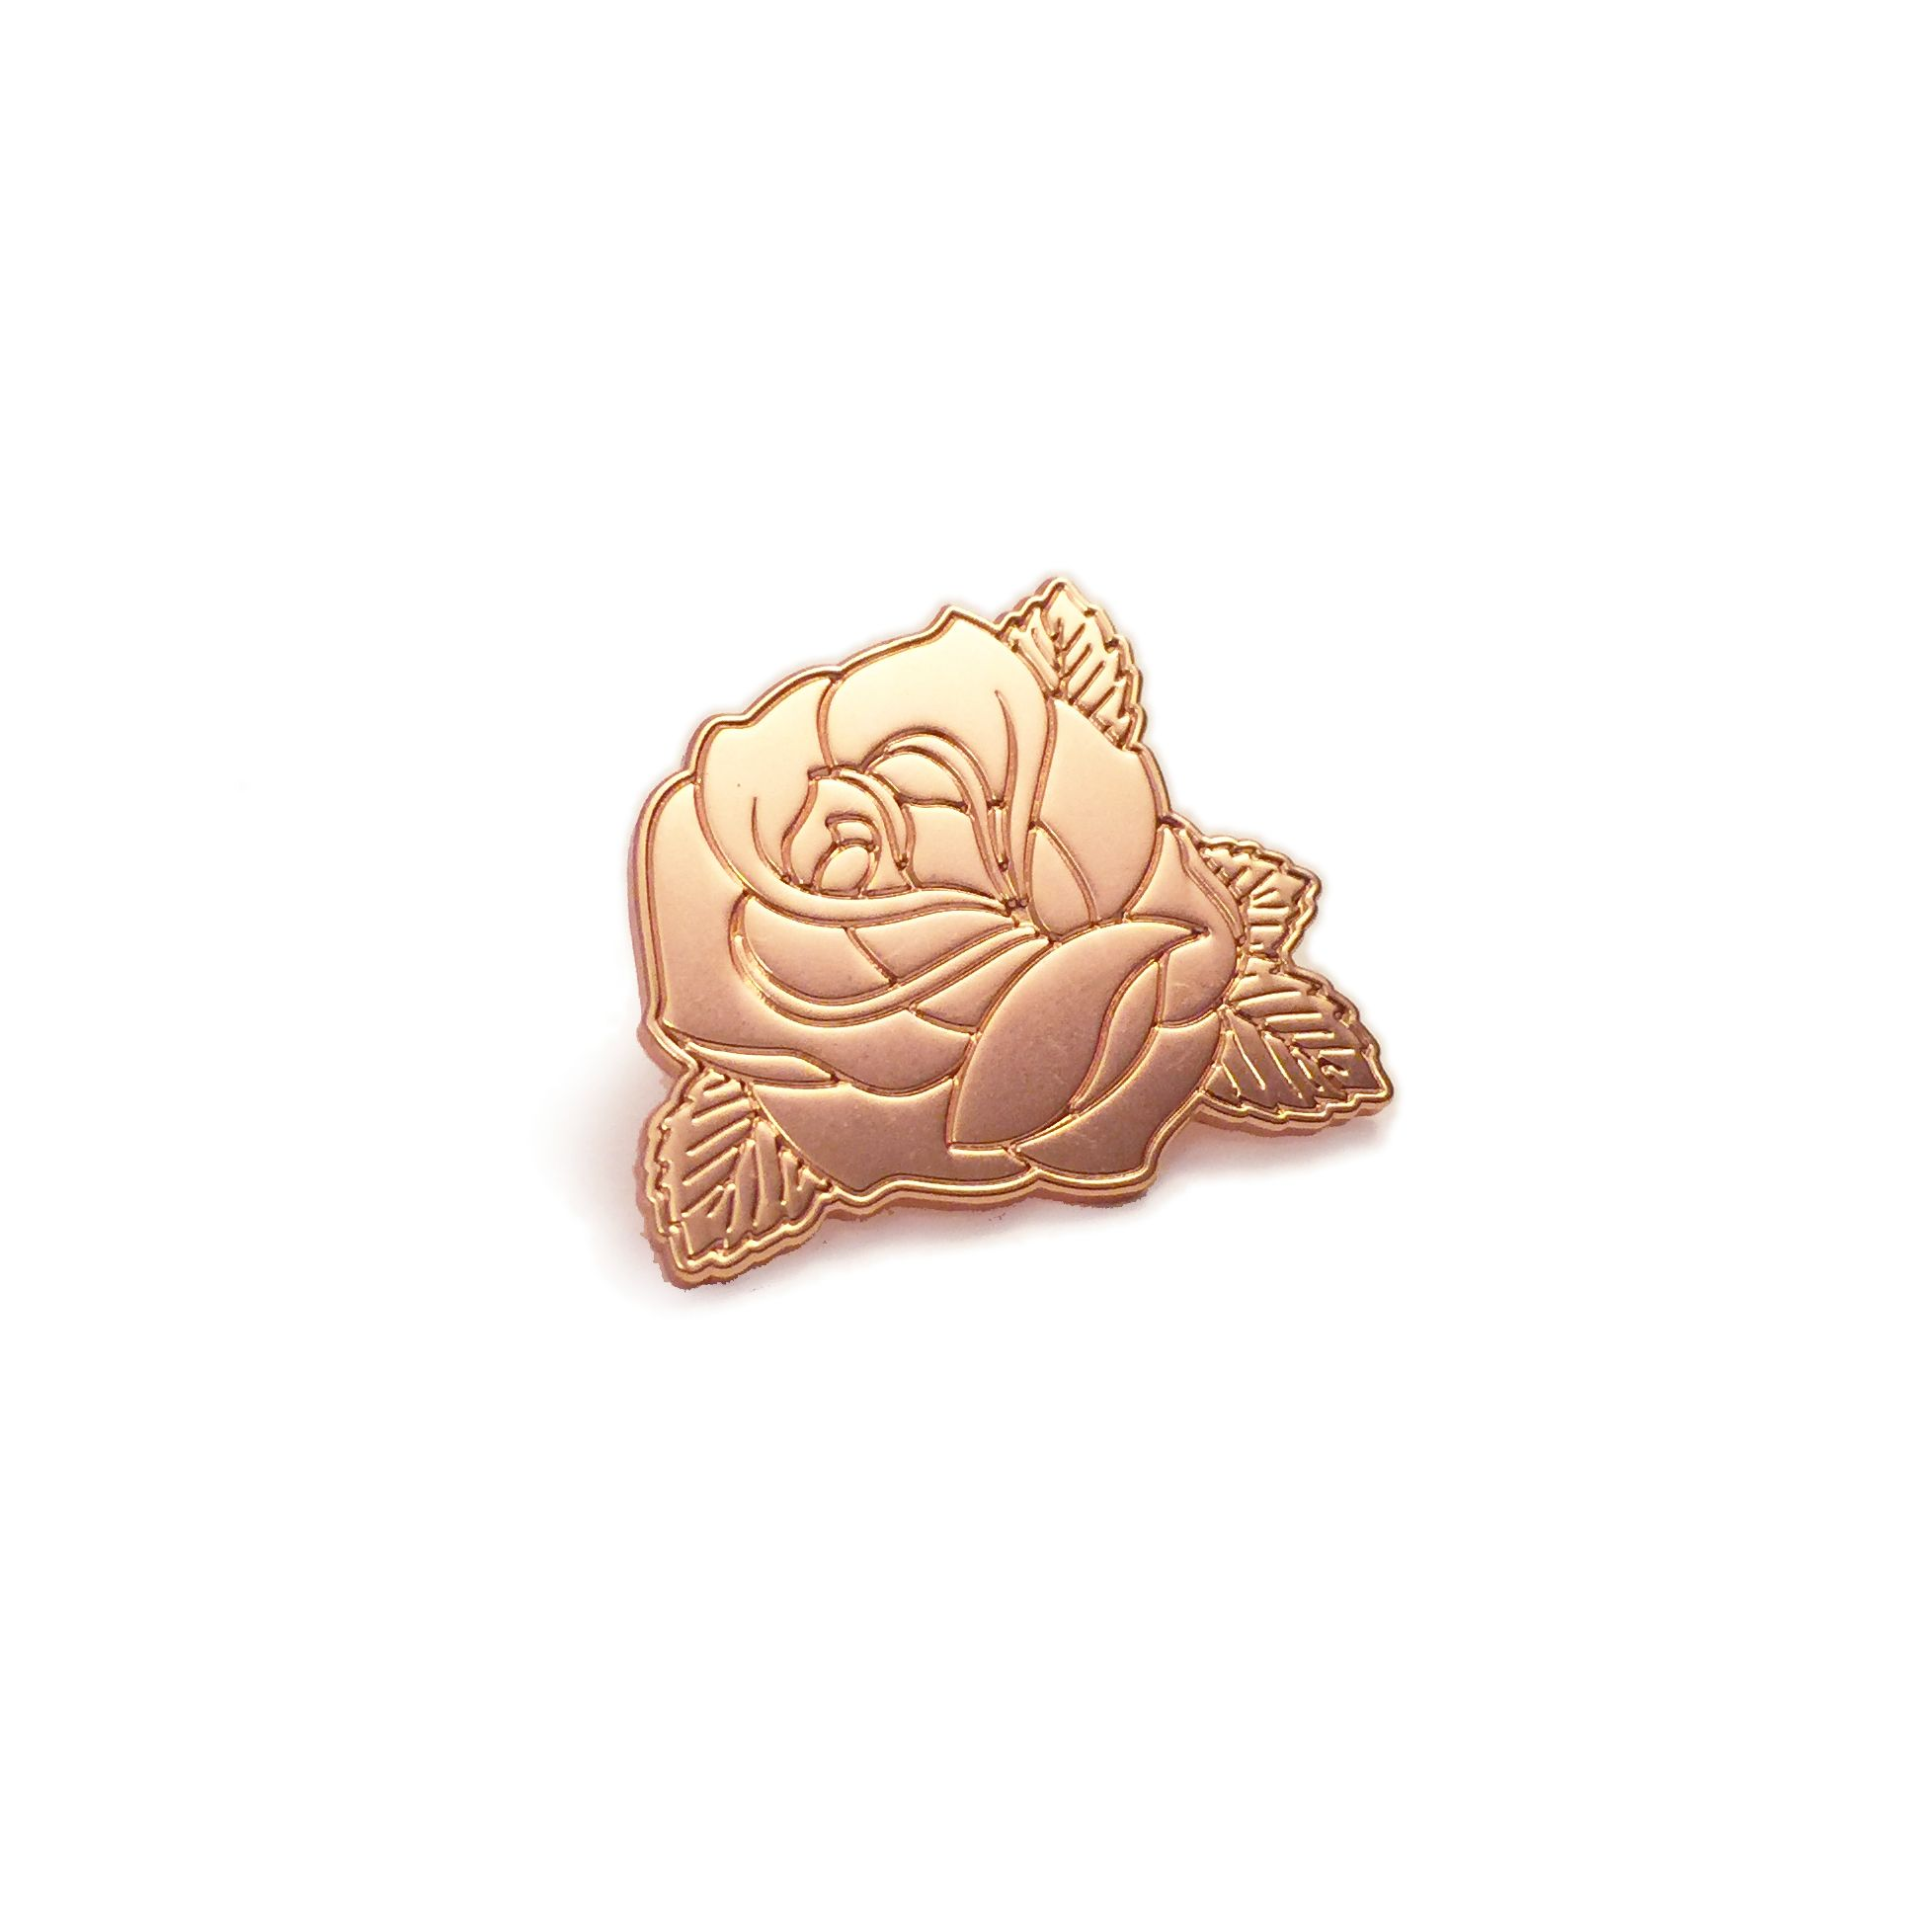 rose 15 tough times press pine Pinterest Rose and Gold